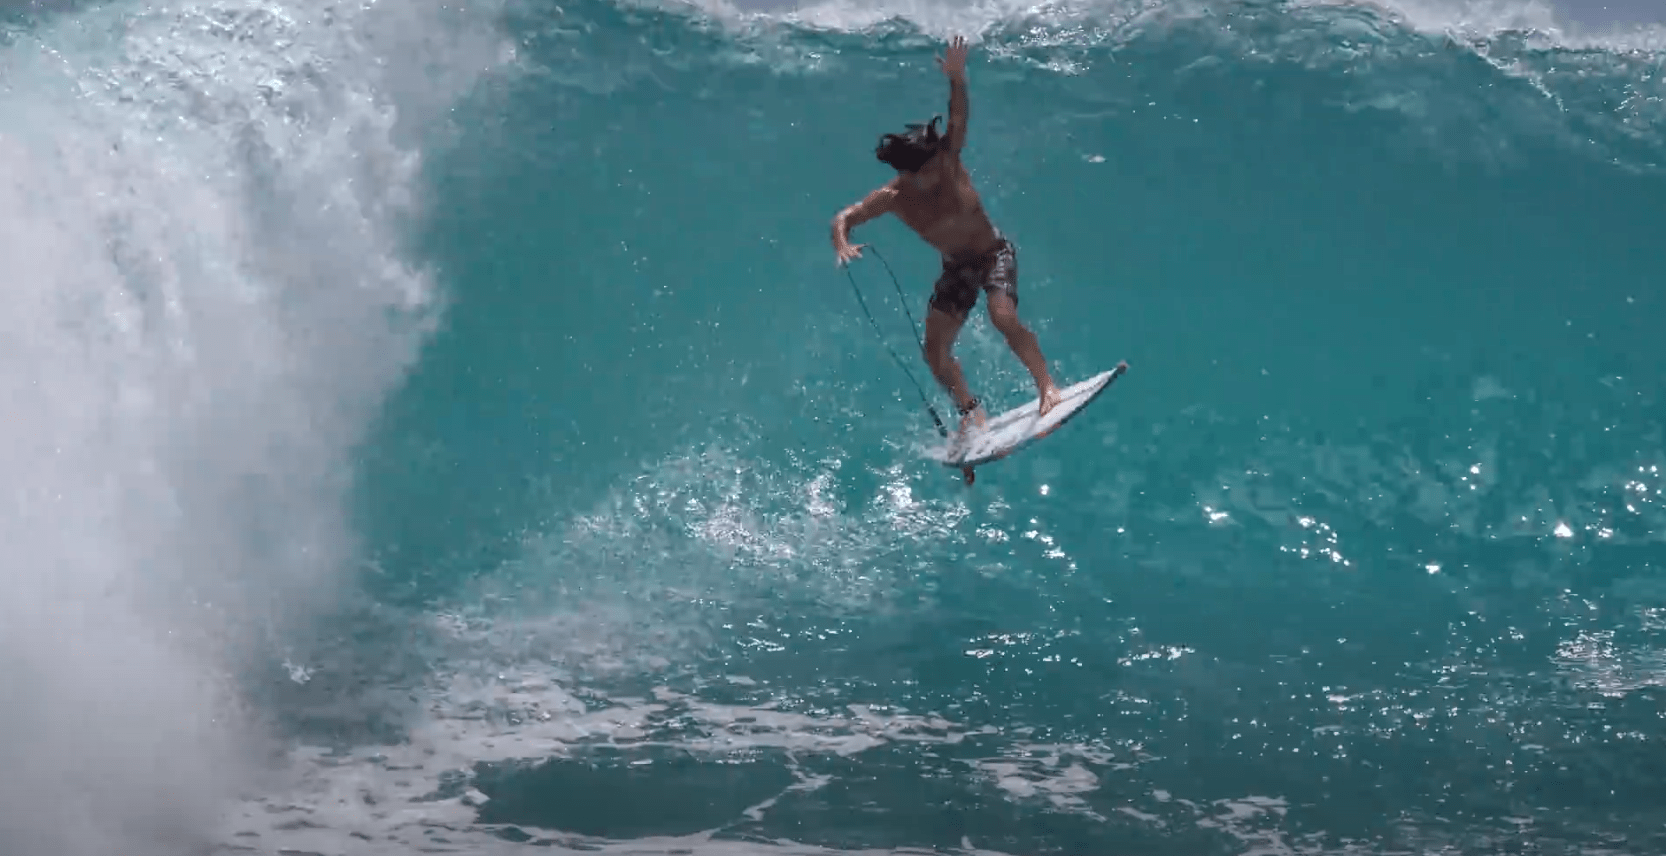 Mason Ho Has No Interest in Waves With Water in the Trough